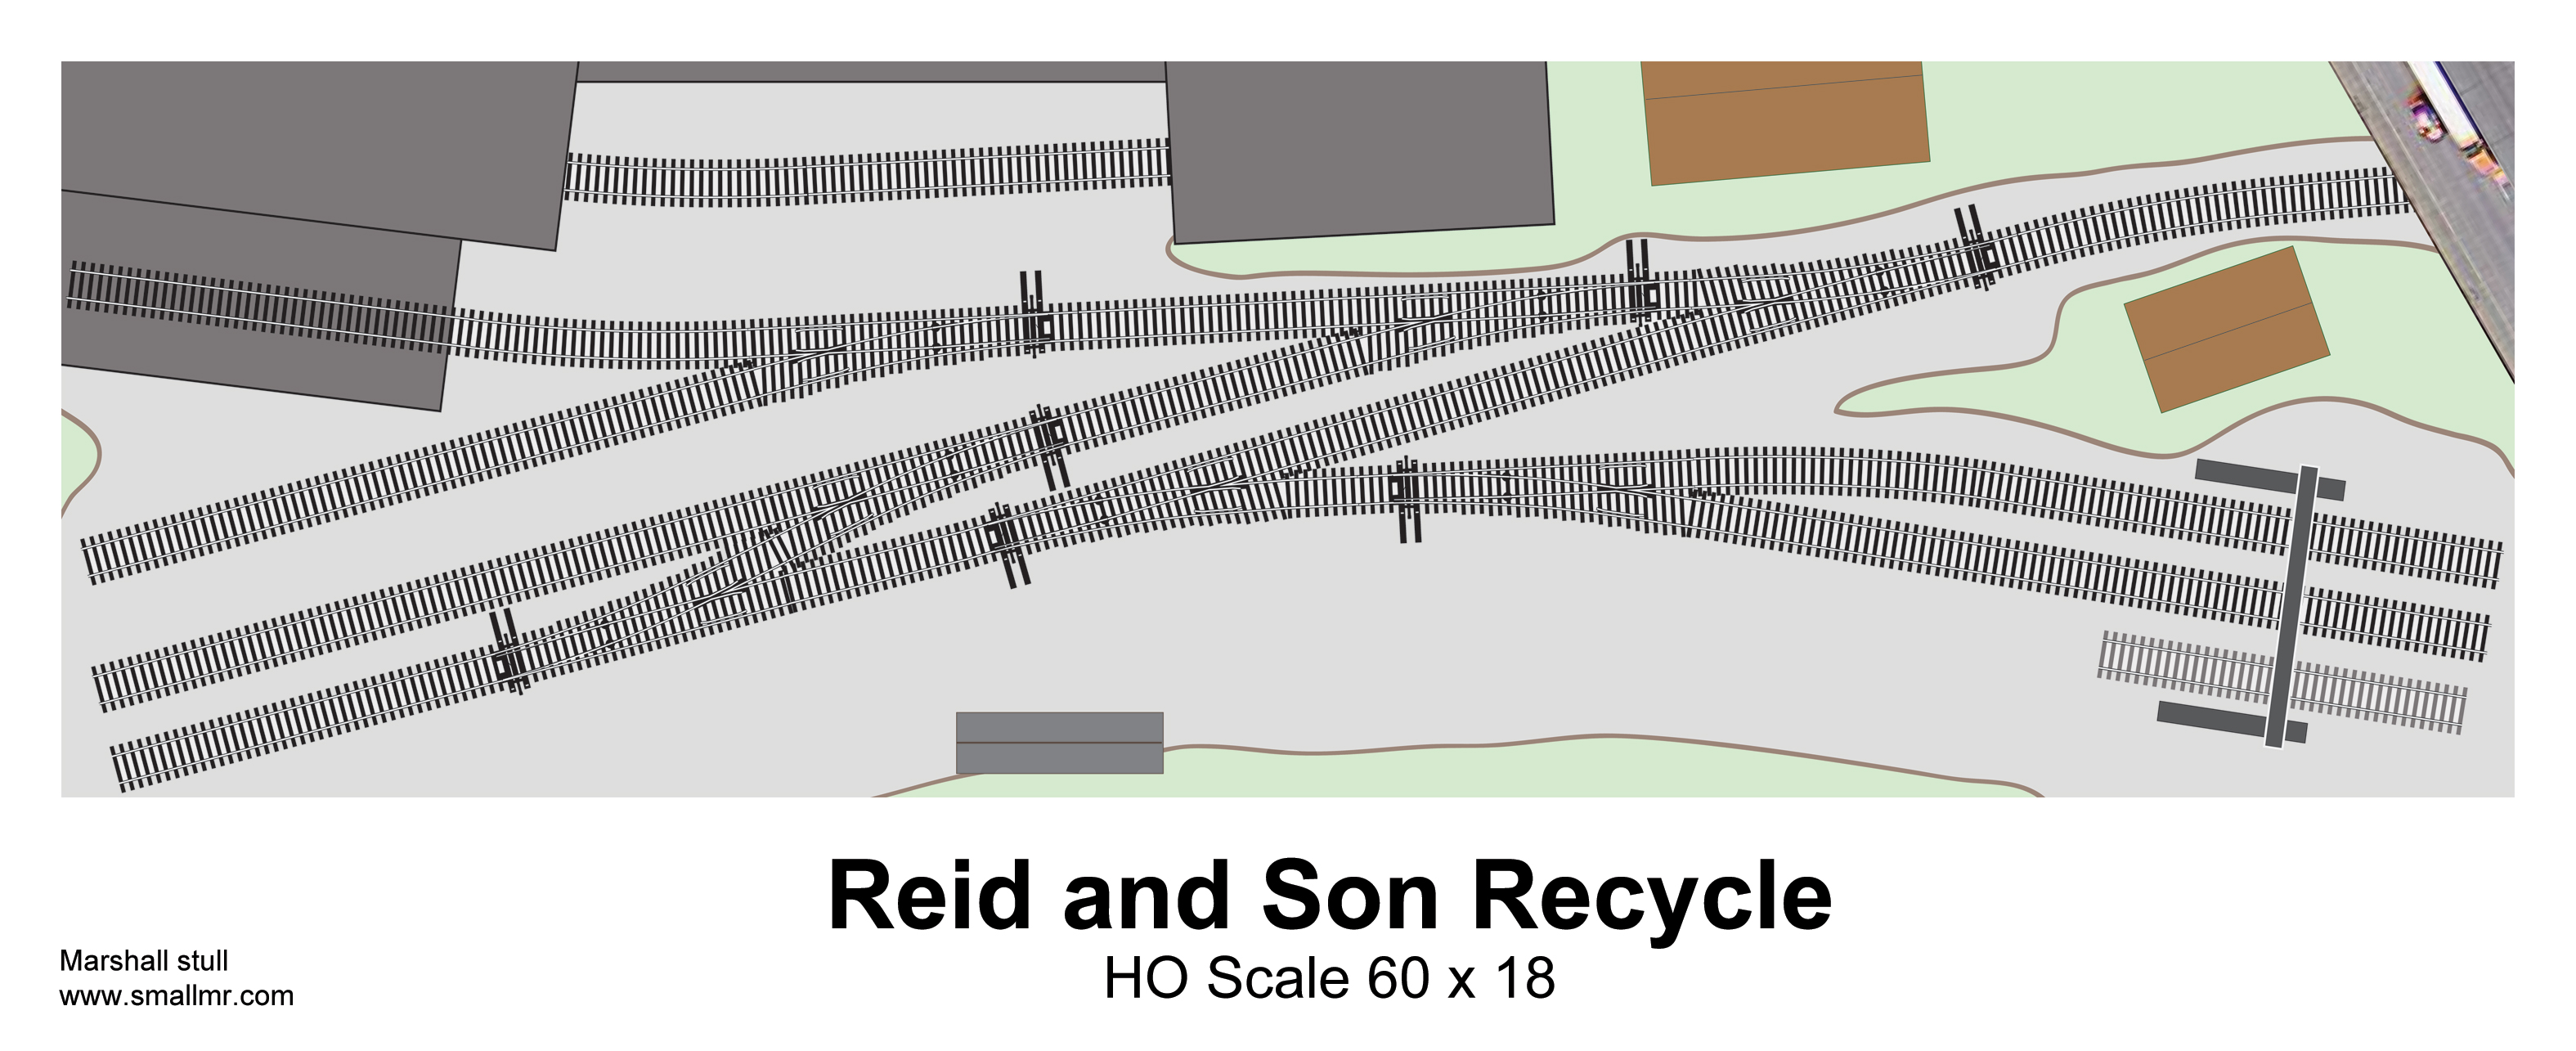 Reid and Son Recycle